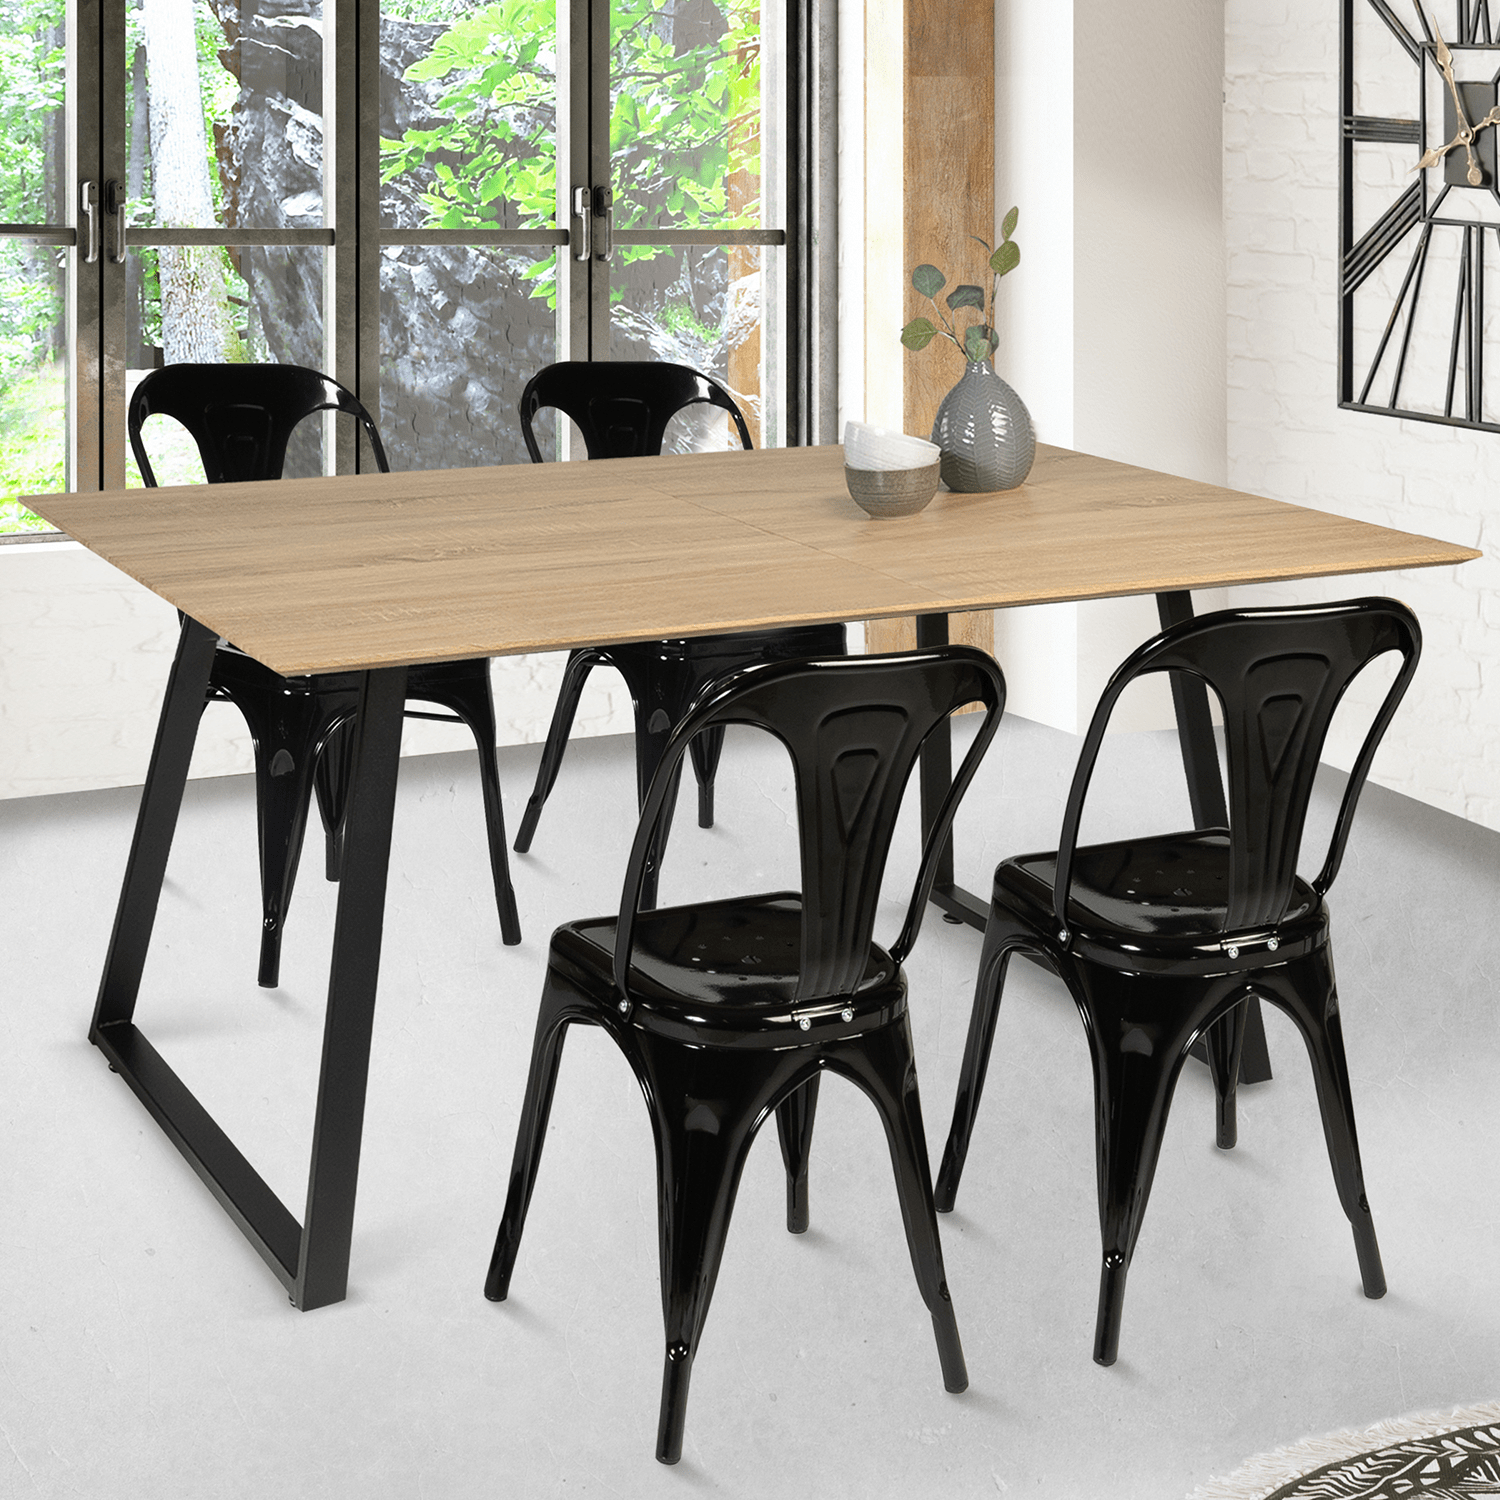 table a manger havana extensible 6 8 personnes design industriel 15